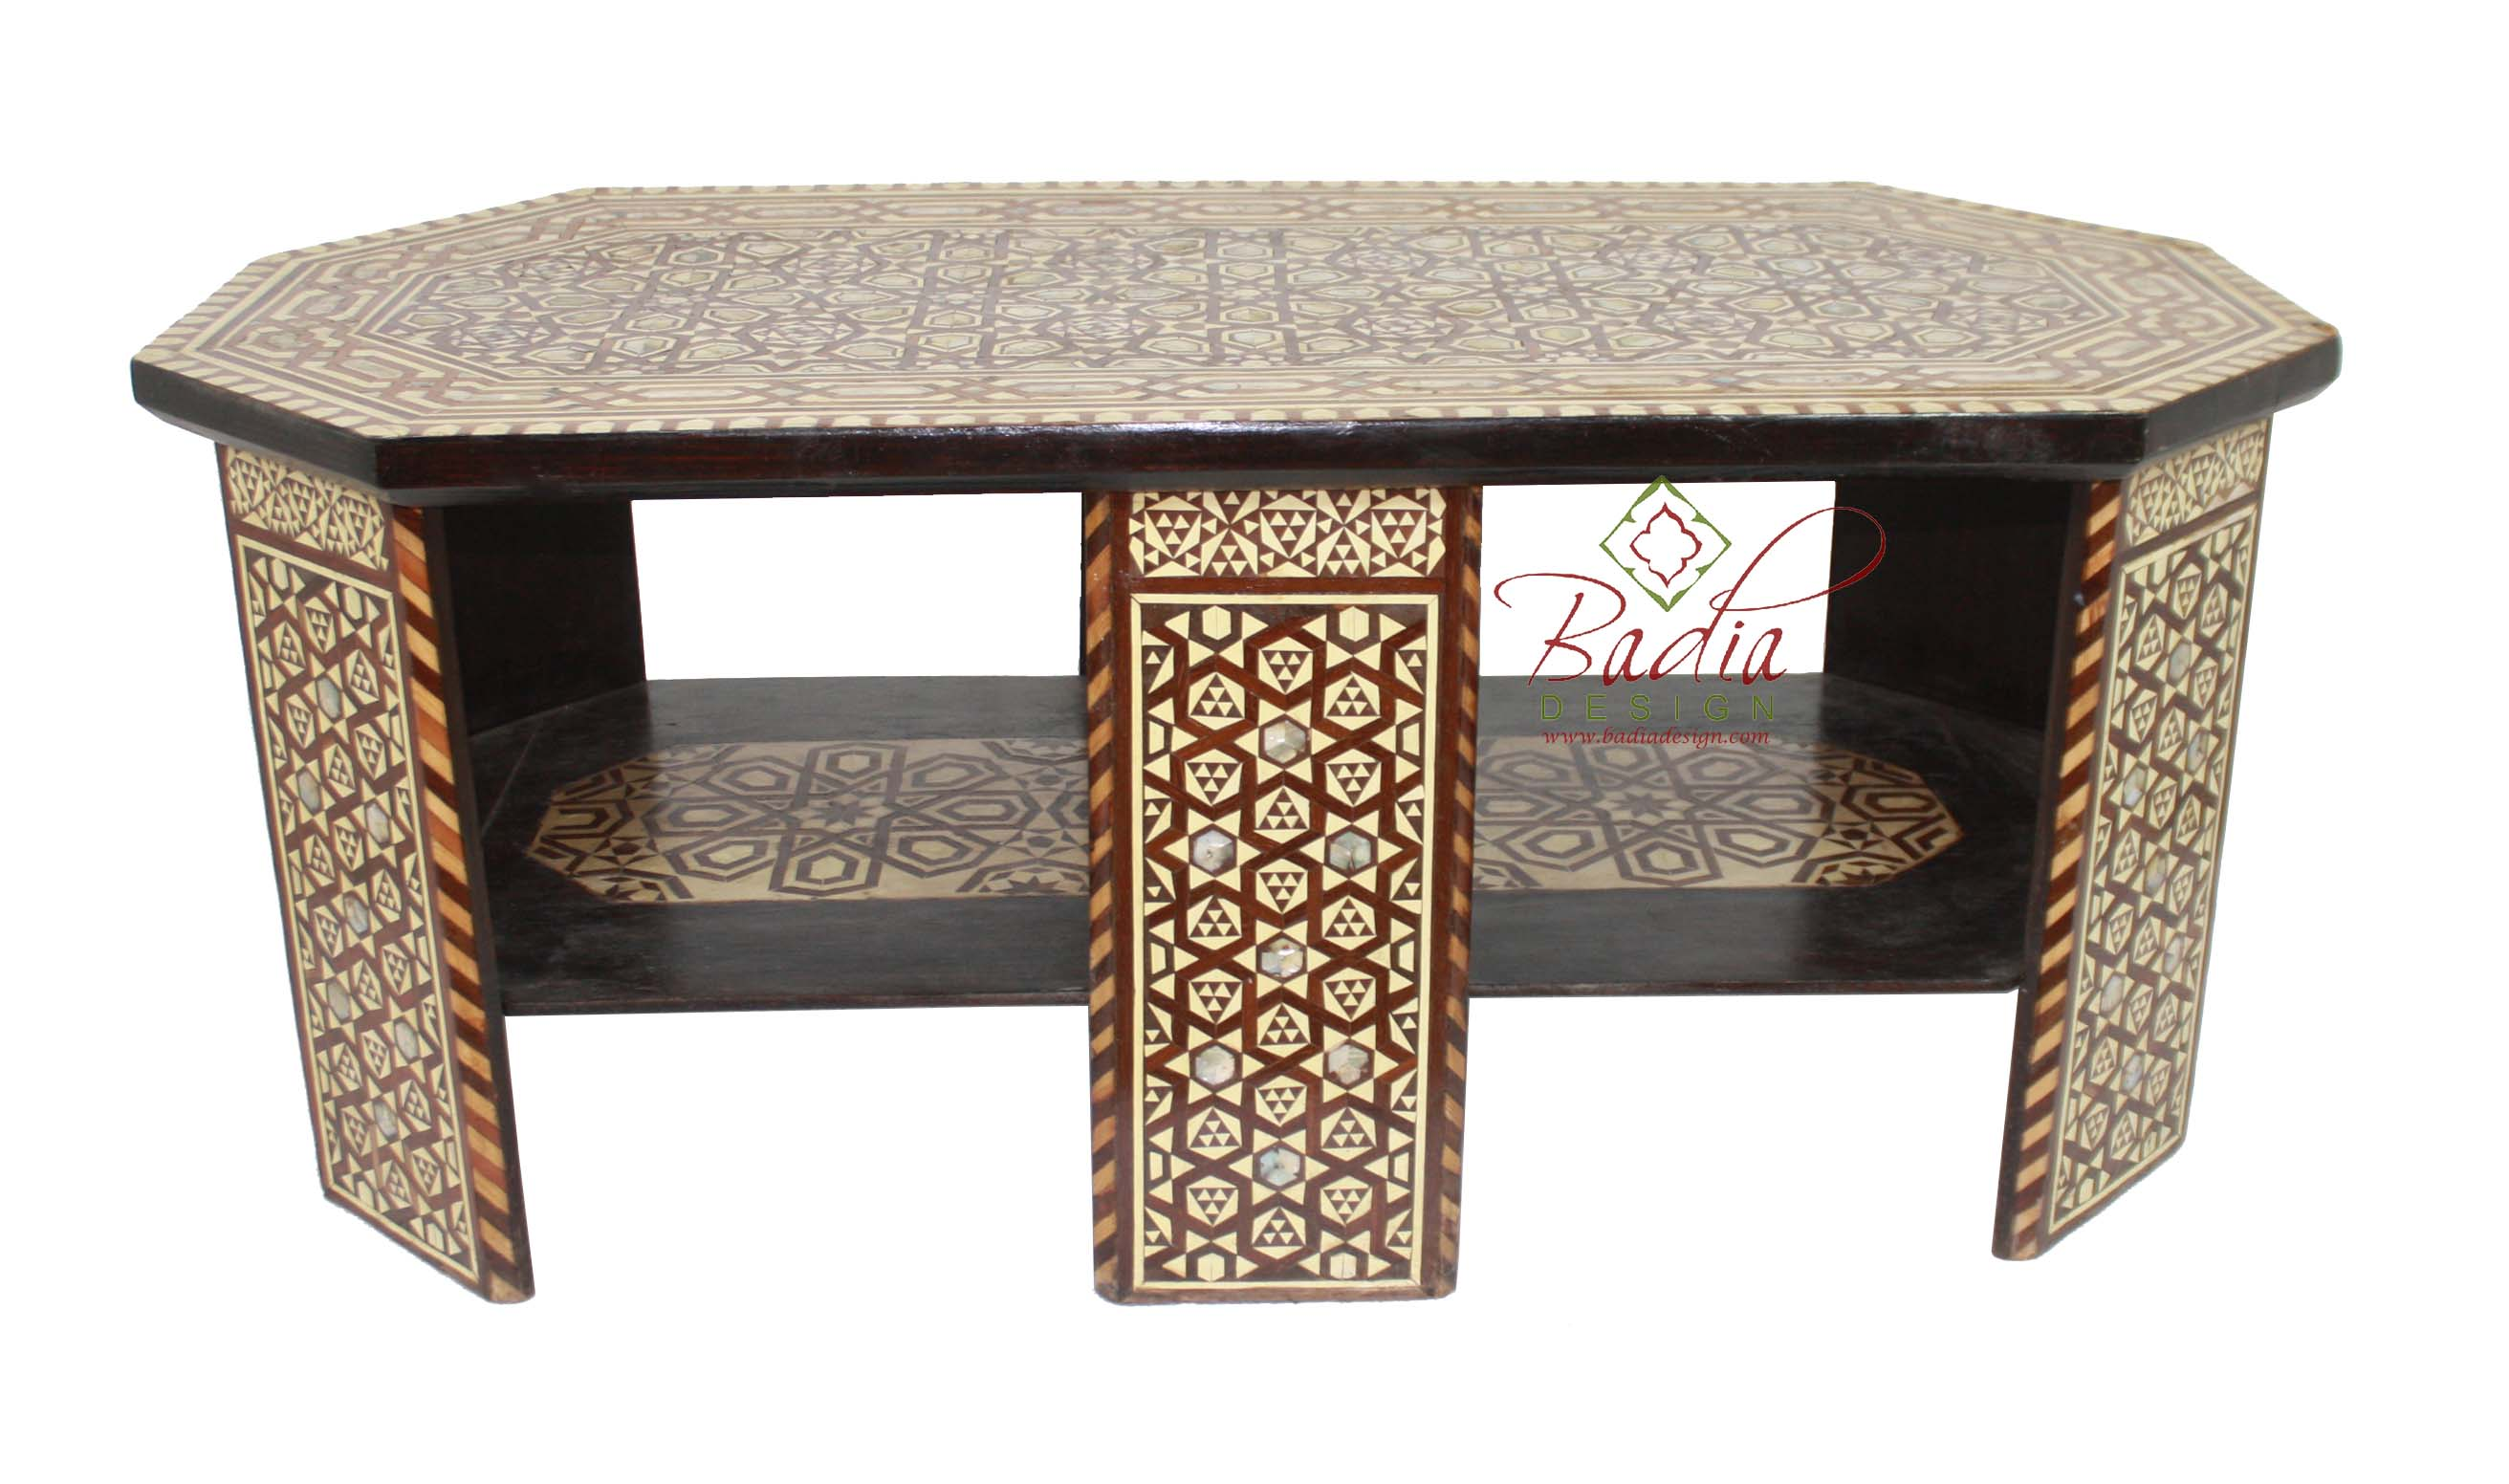 syrian-oval-shaped-coffee-table-mop-st081-1.jpg